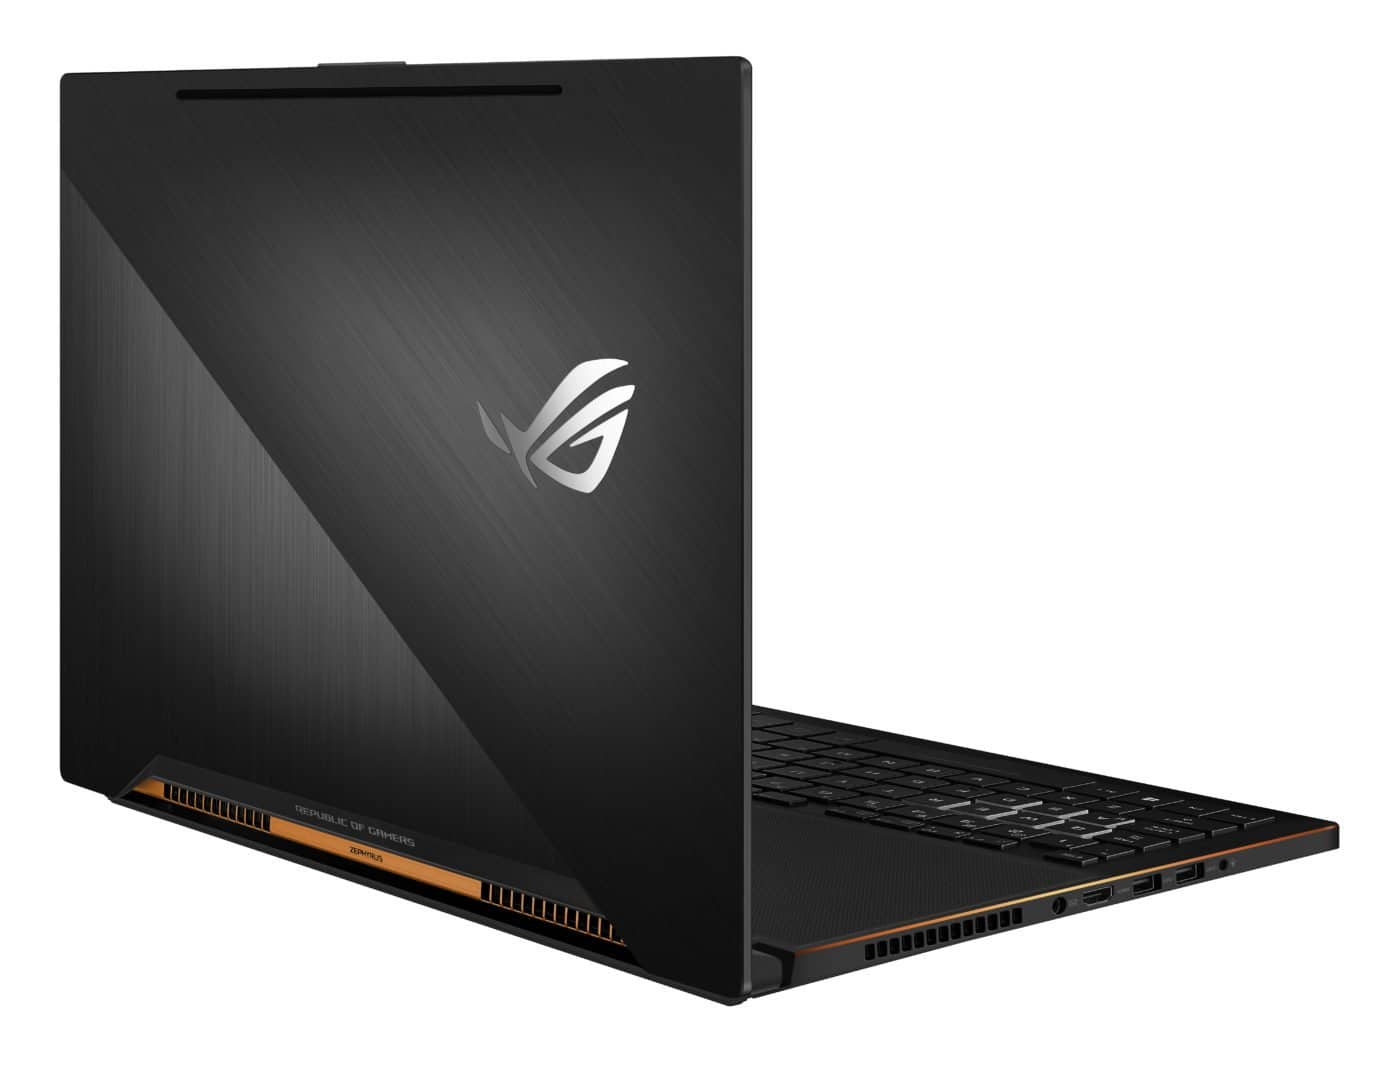 Asus Refreshes Their Gaming Laptops With Coffee Lake CPUs 1